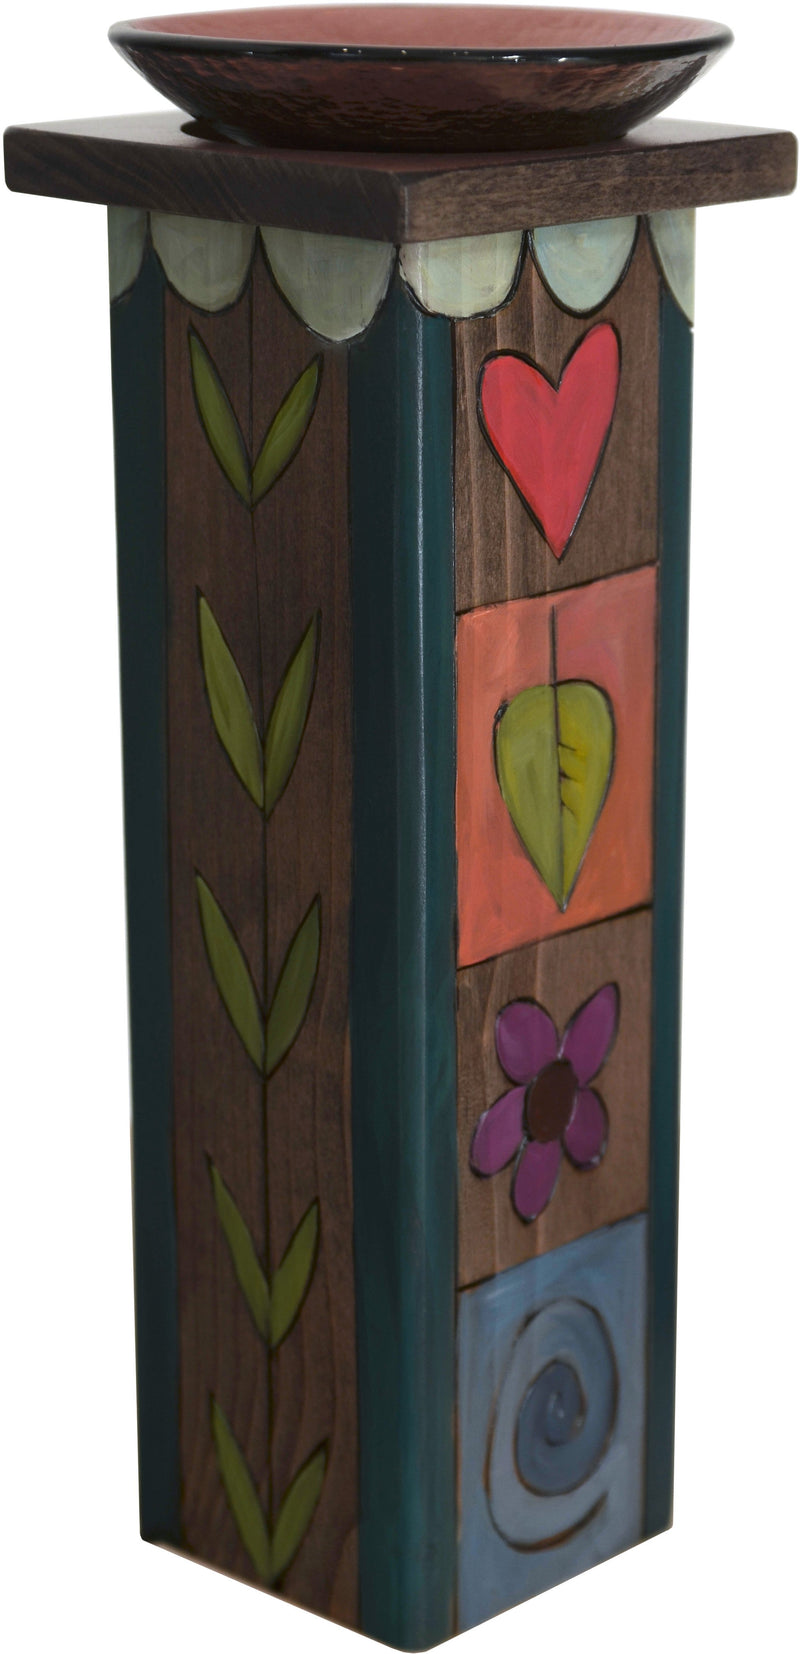 Large Pillar Candle Holder –  Elegant candle holder with rich hues and colorful block icons